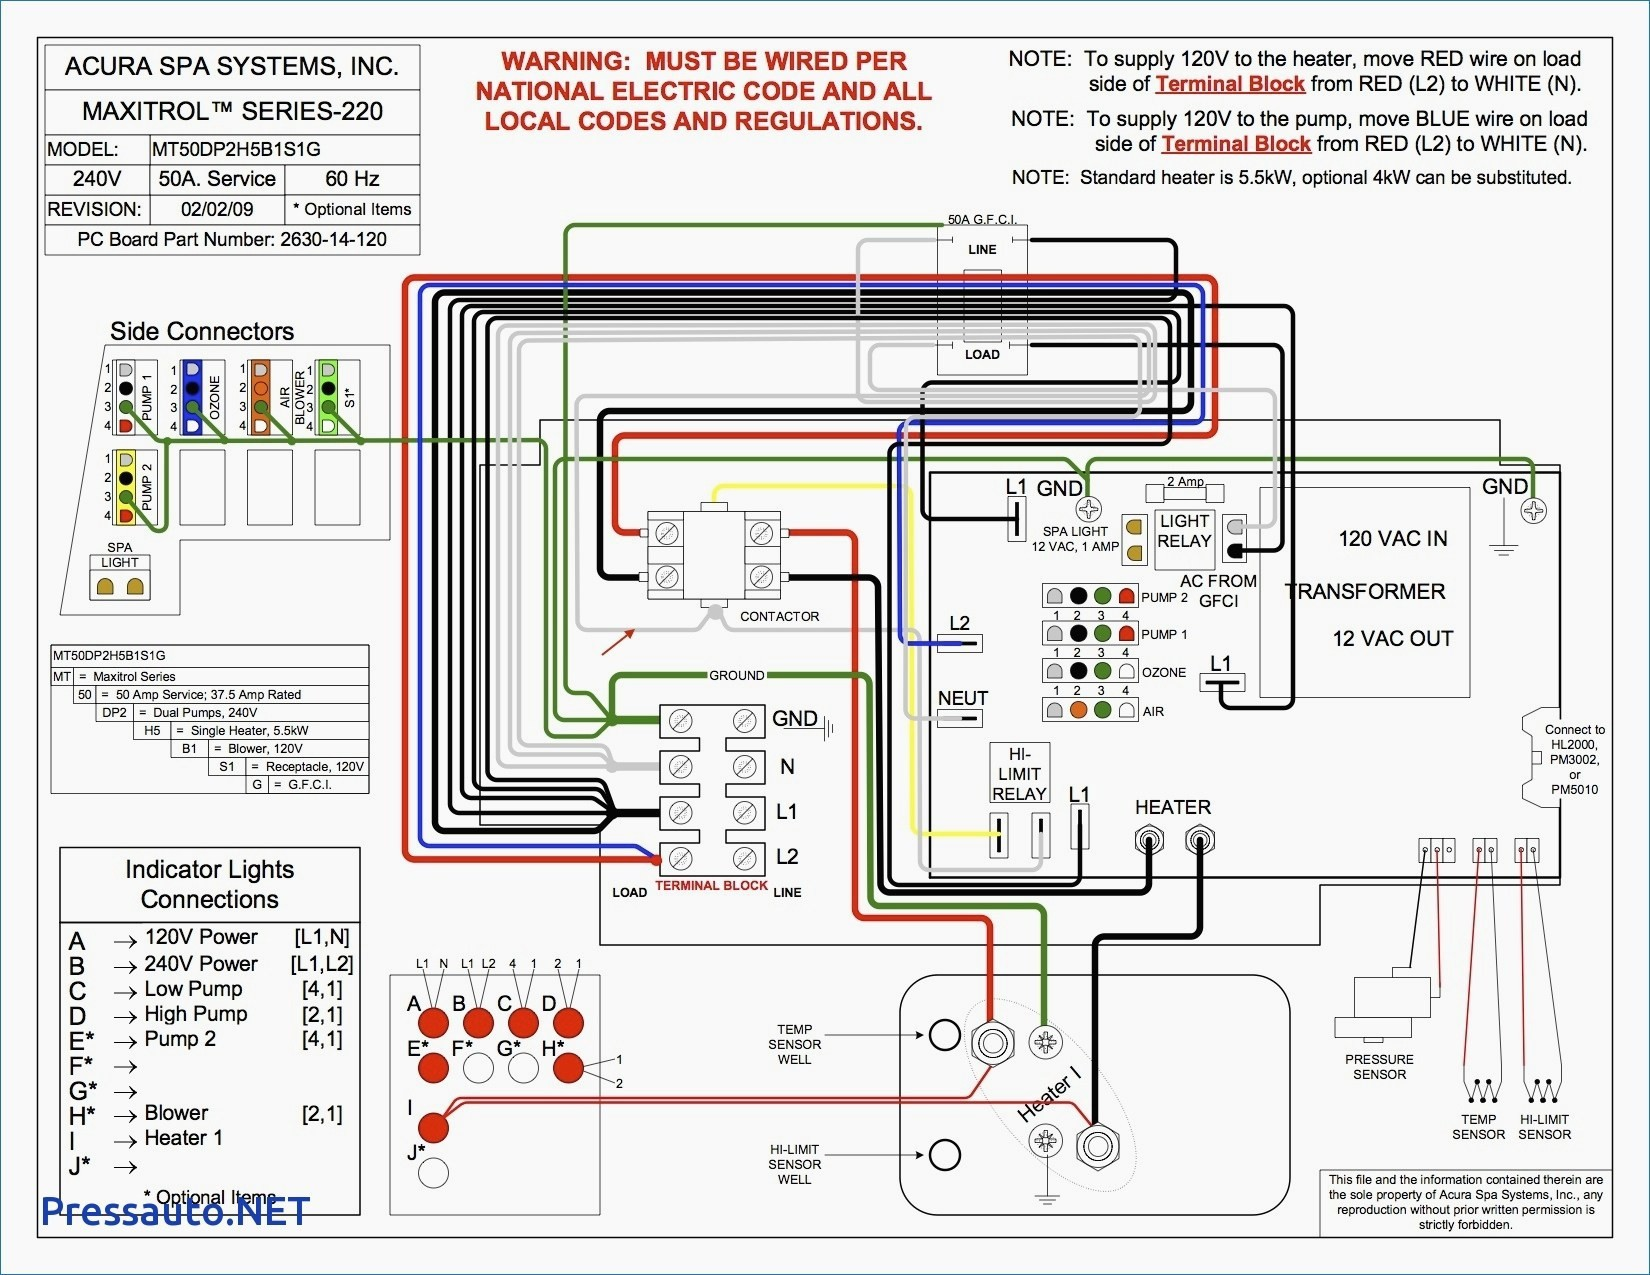 Cal Spa Wiring Diagram Wiring Diagram for Guitar Best Wiring Diagram Guitar Refrence Of Cal Spa Wiring Diagram